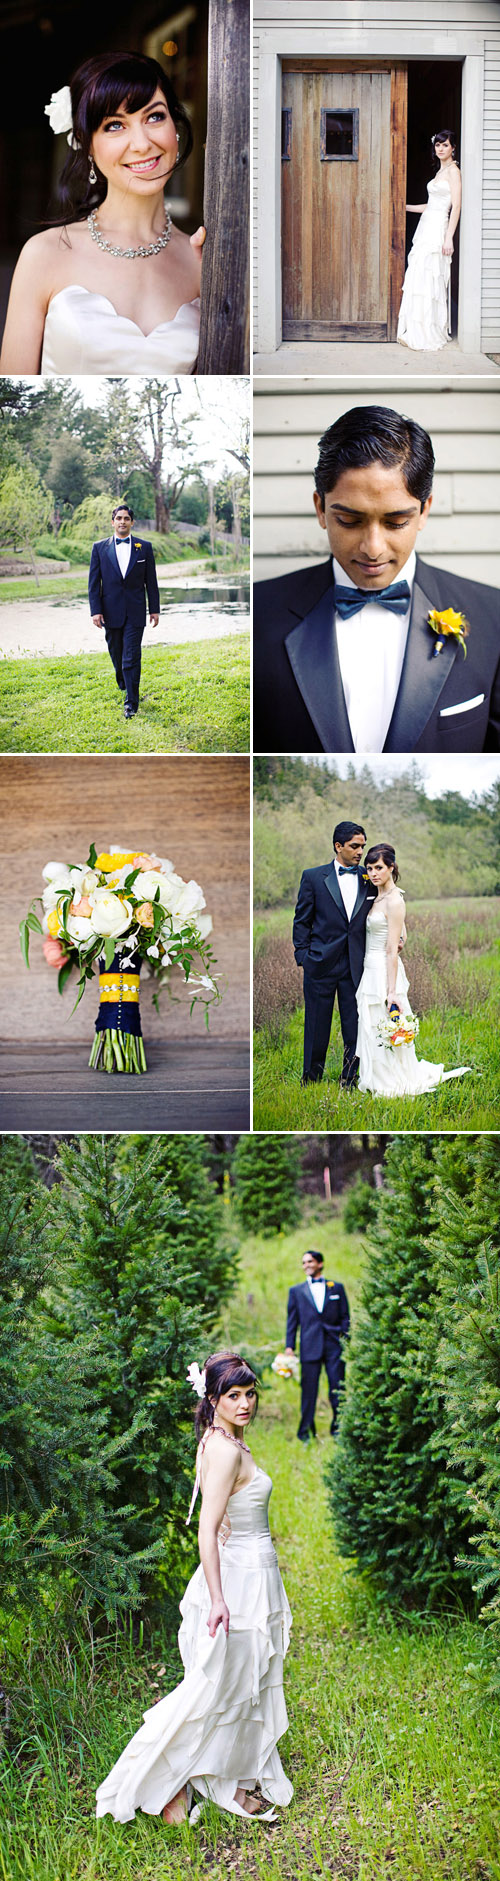 van gogh's starry night wedding fashion and design inspiration, images by meg perotti